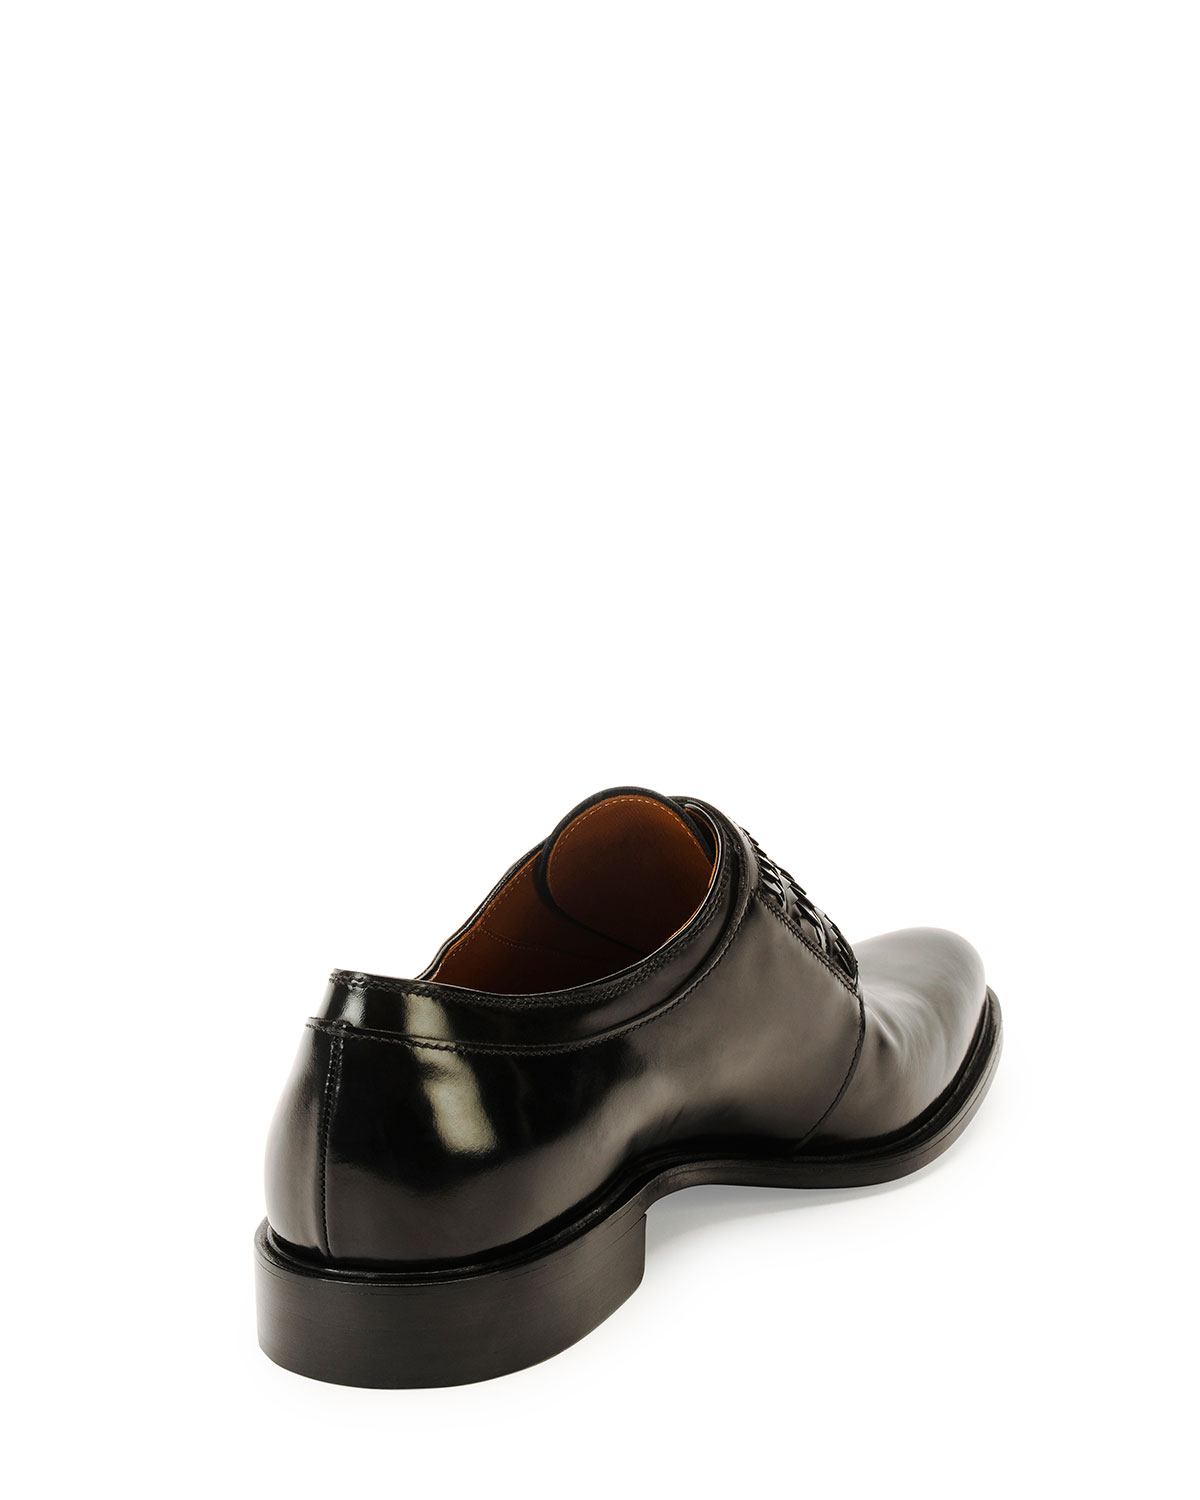 Givenchy Napoleone Leather Double Monk Shoe In Black For